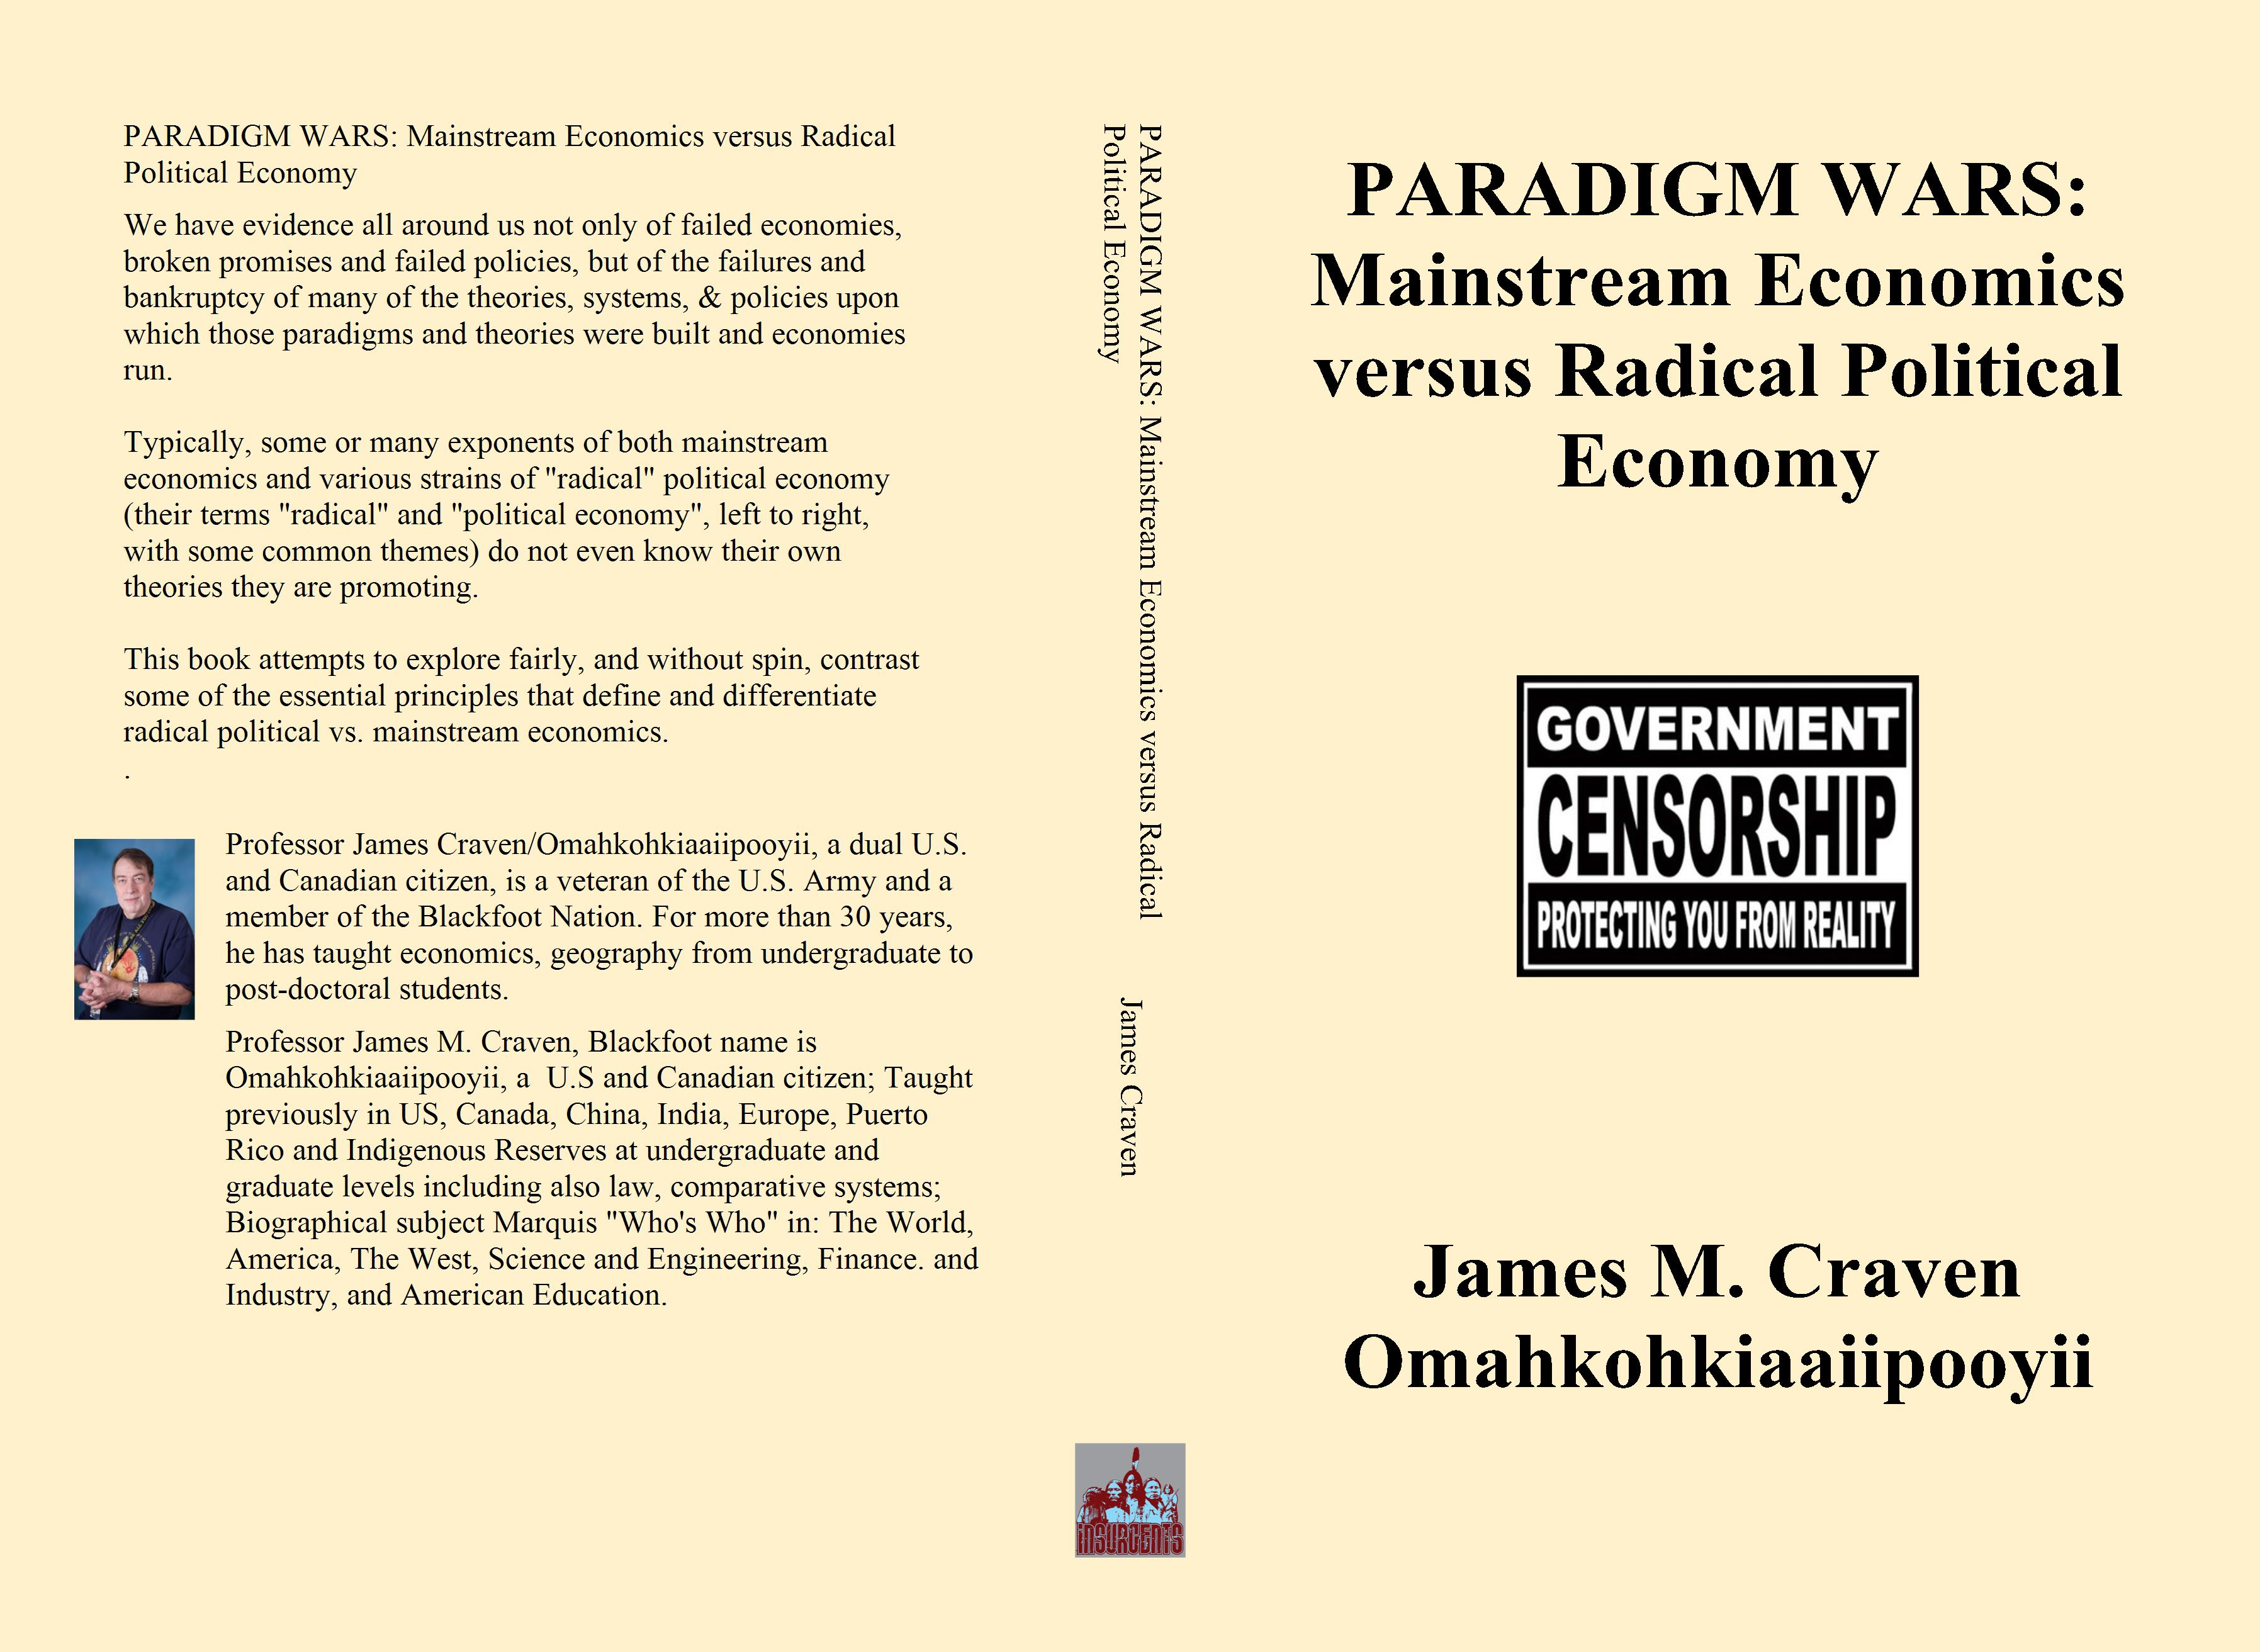 PARADIGM WARS: Mainstream Economics versus Radical Political Economy cover image